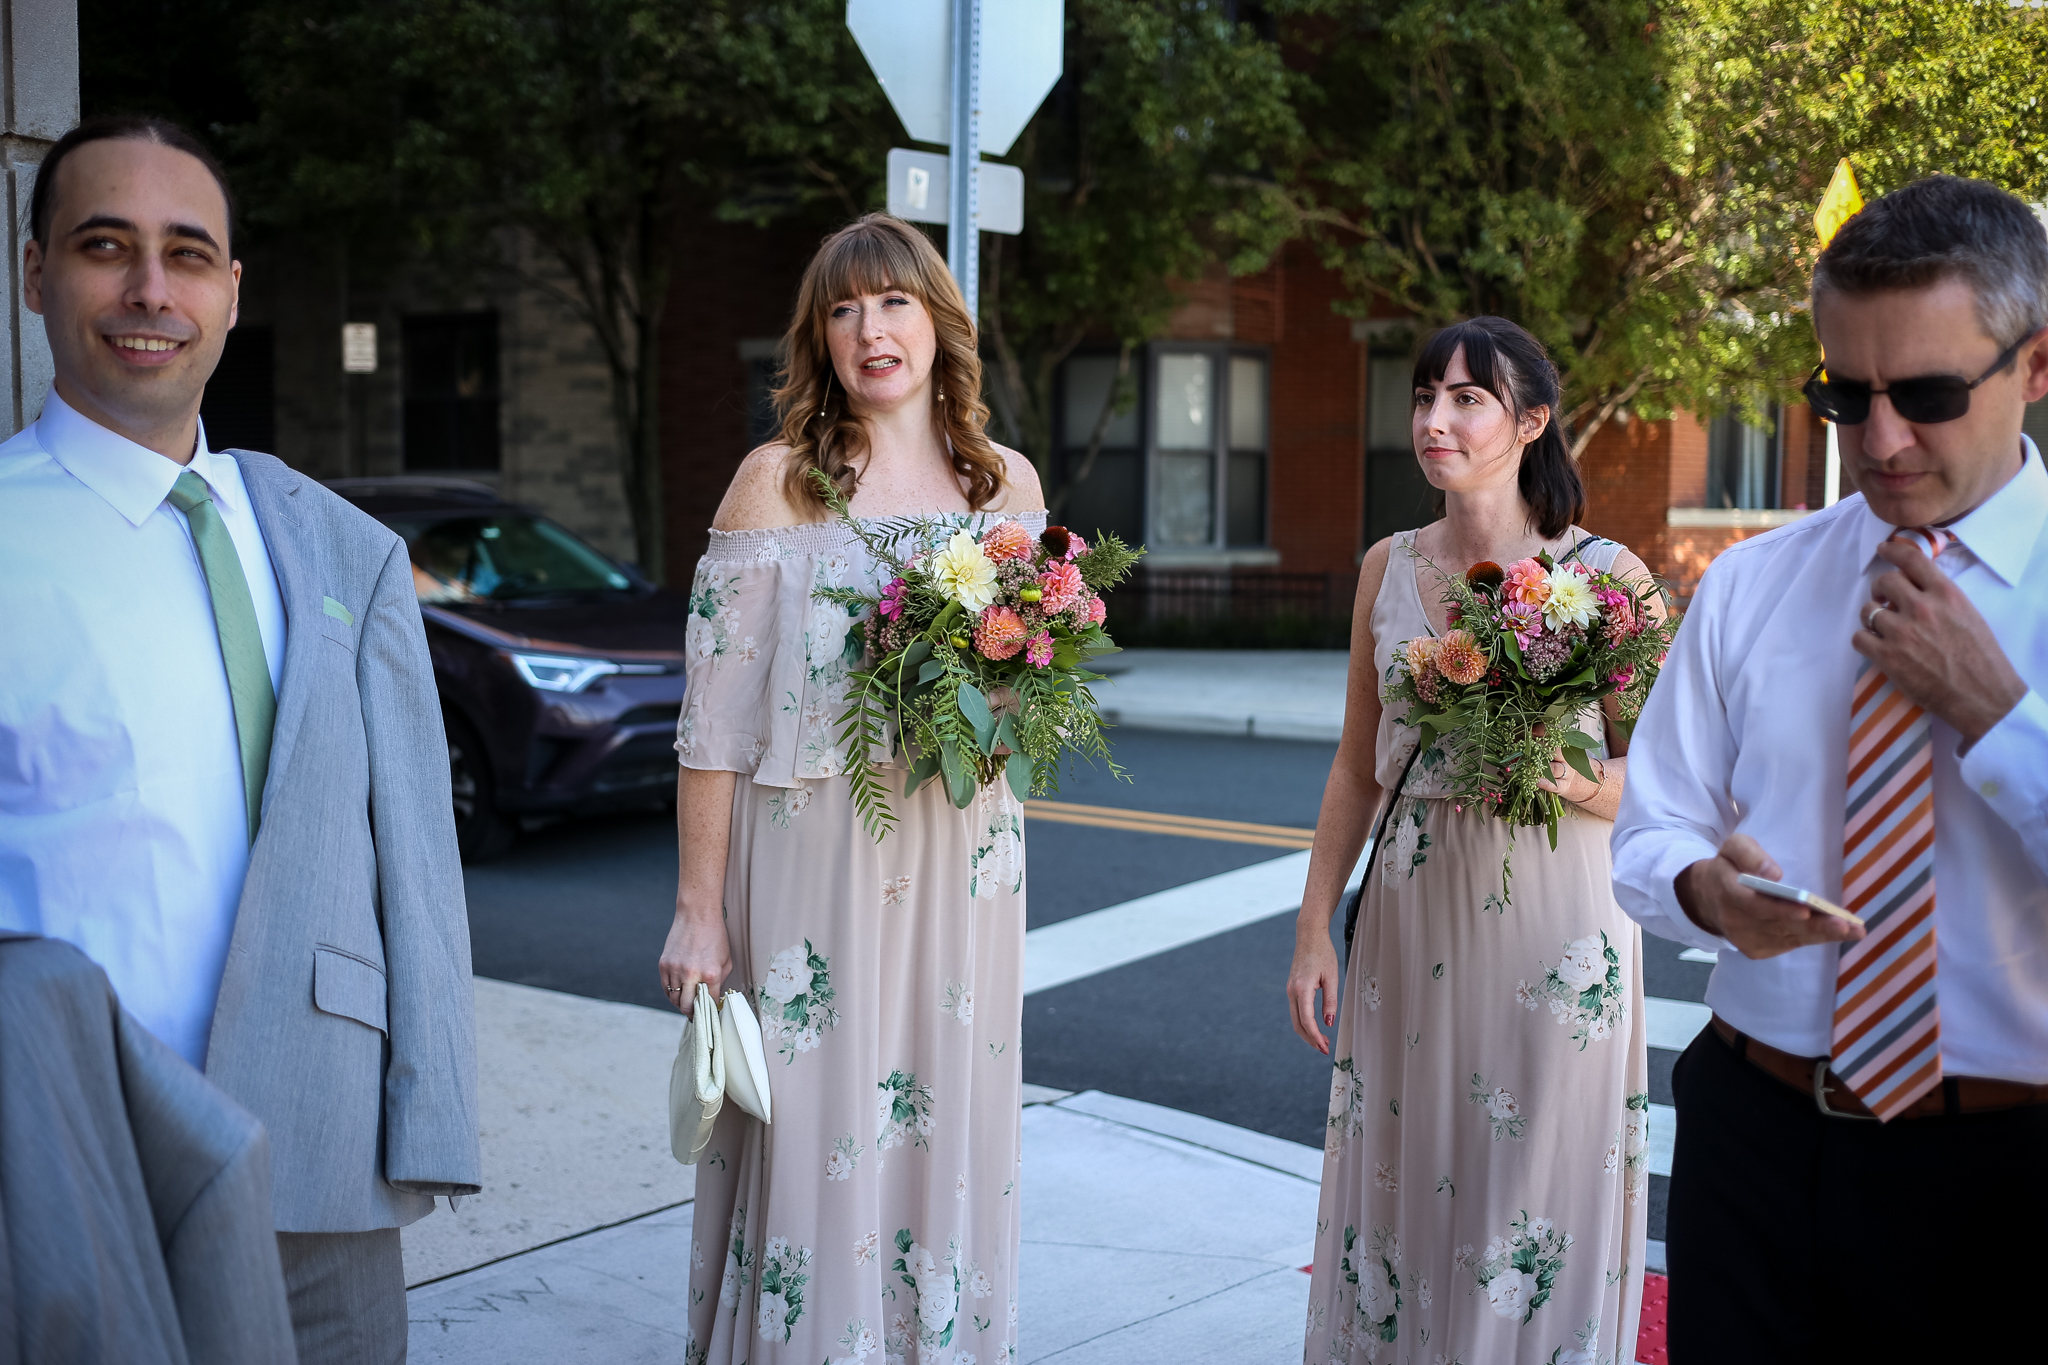 Lehigh Valley bridesmaids, documentary wedding photography.